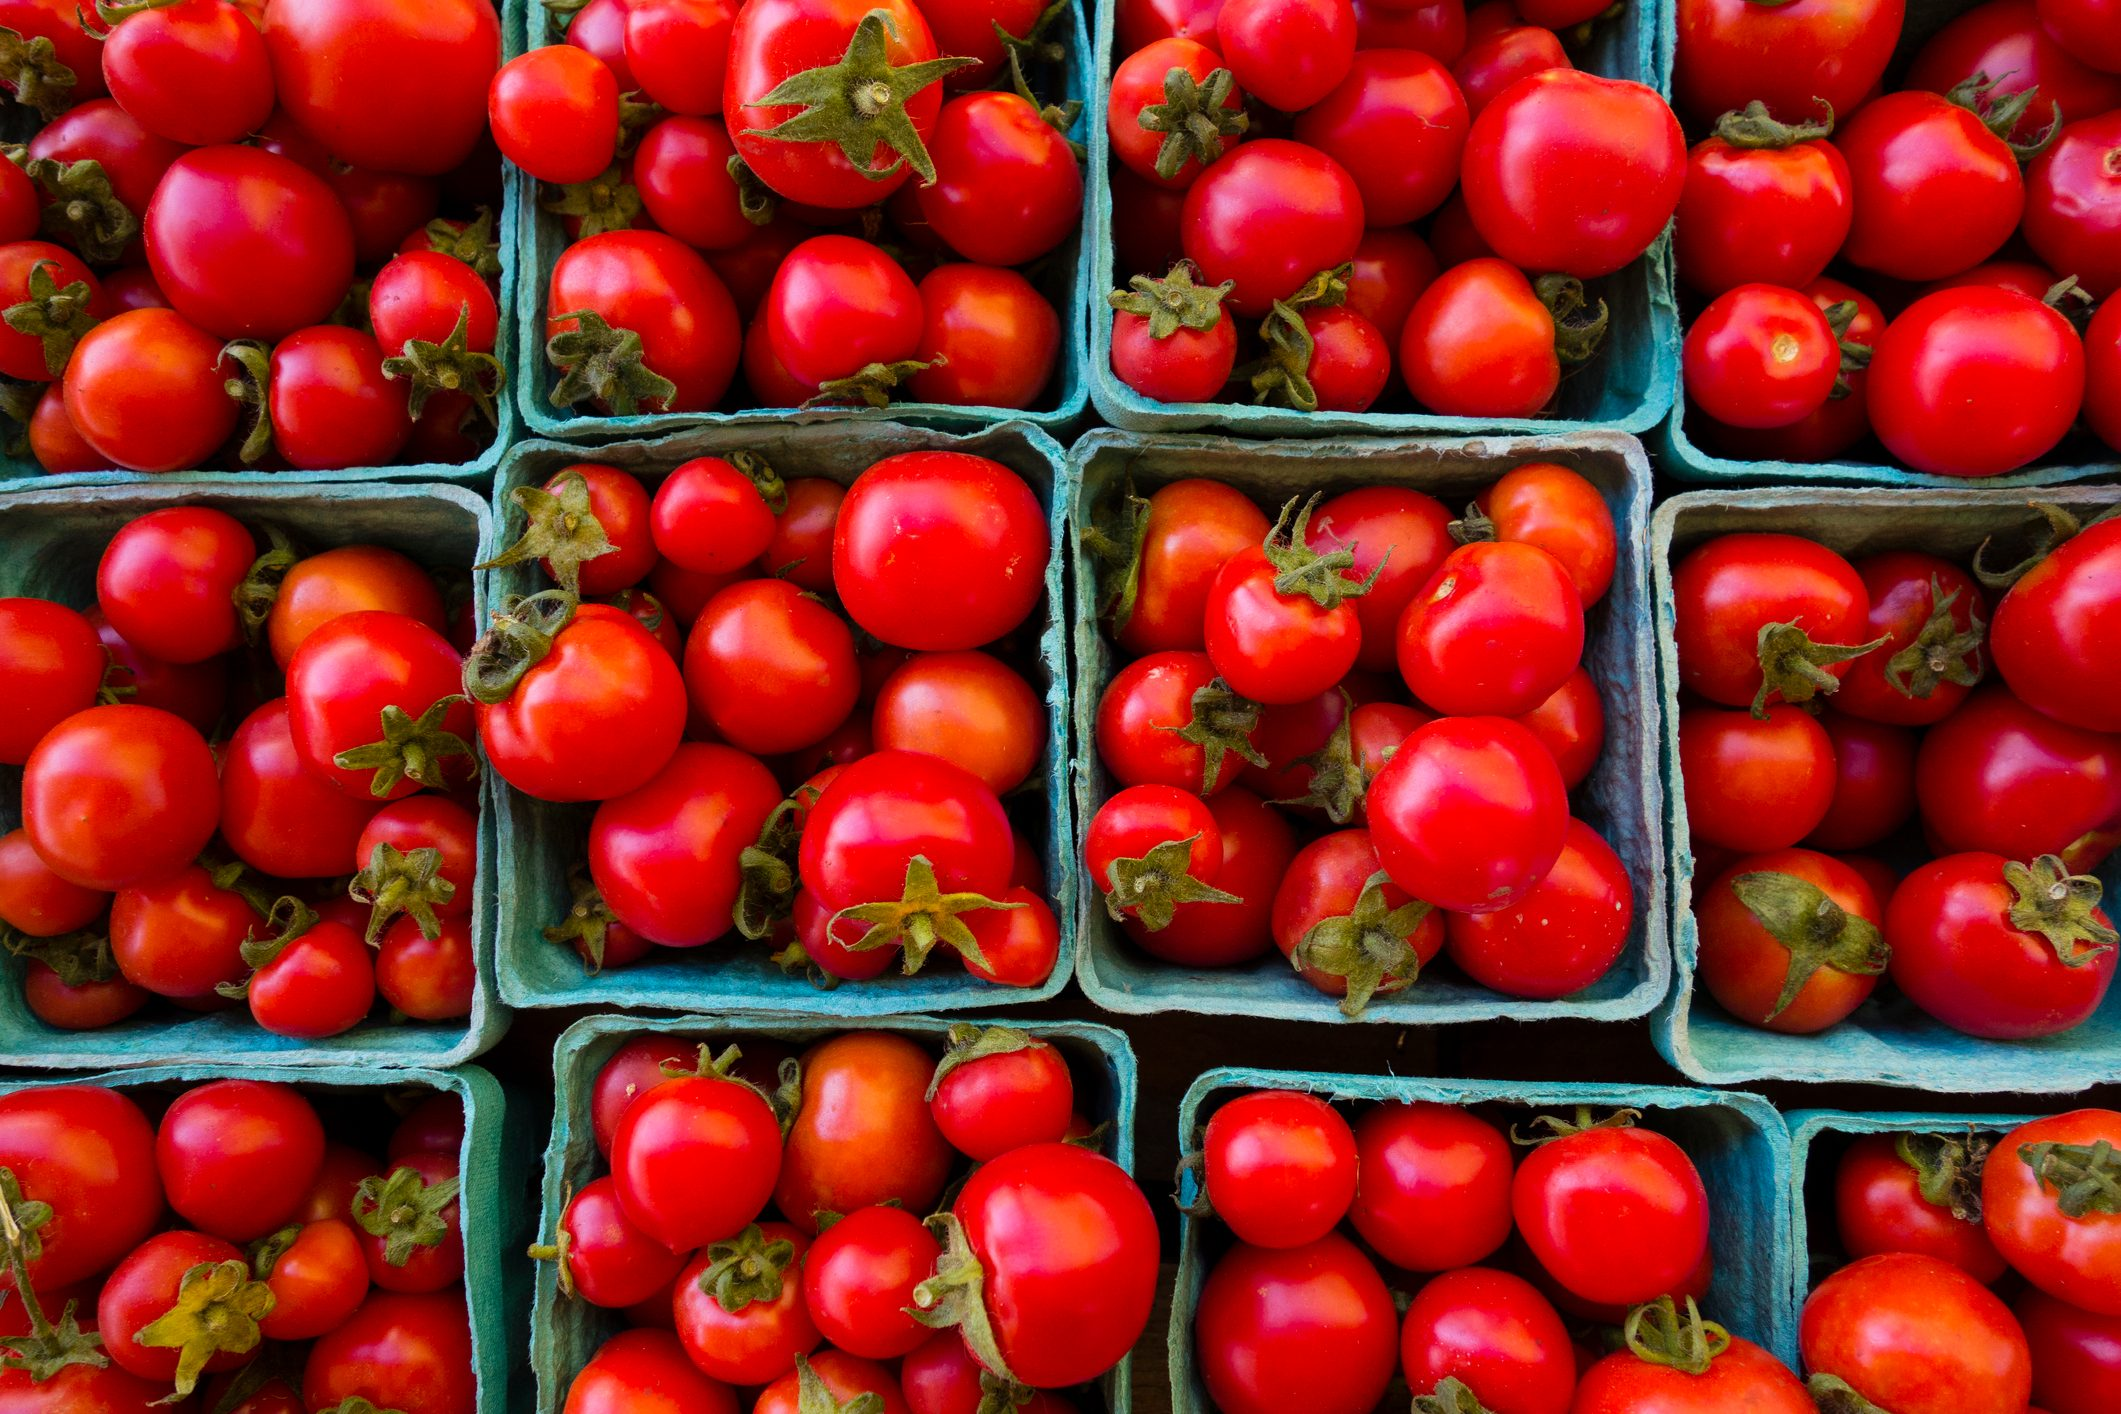 Containers of tomatoes